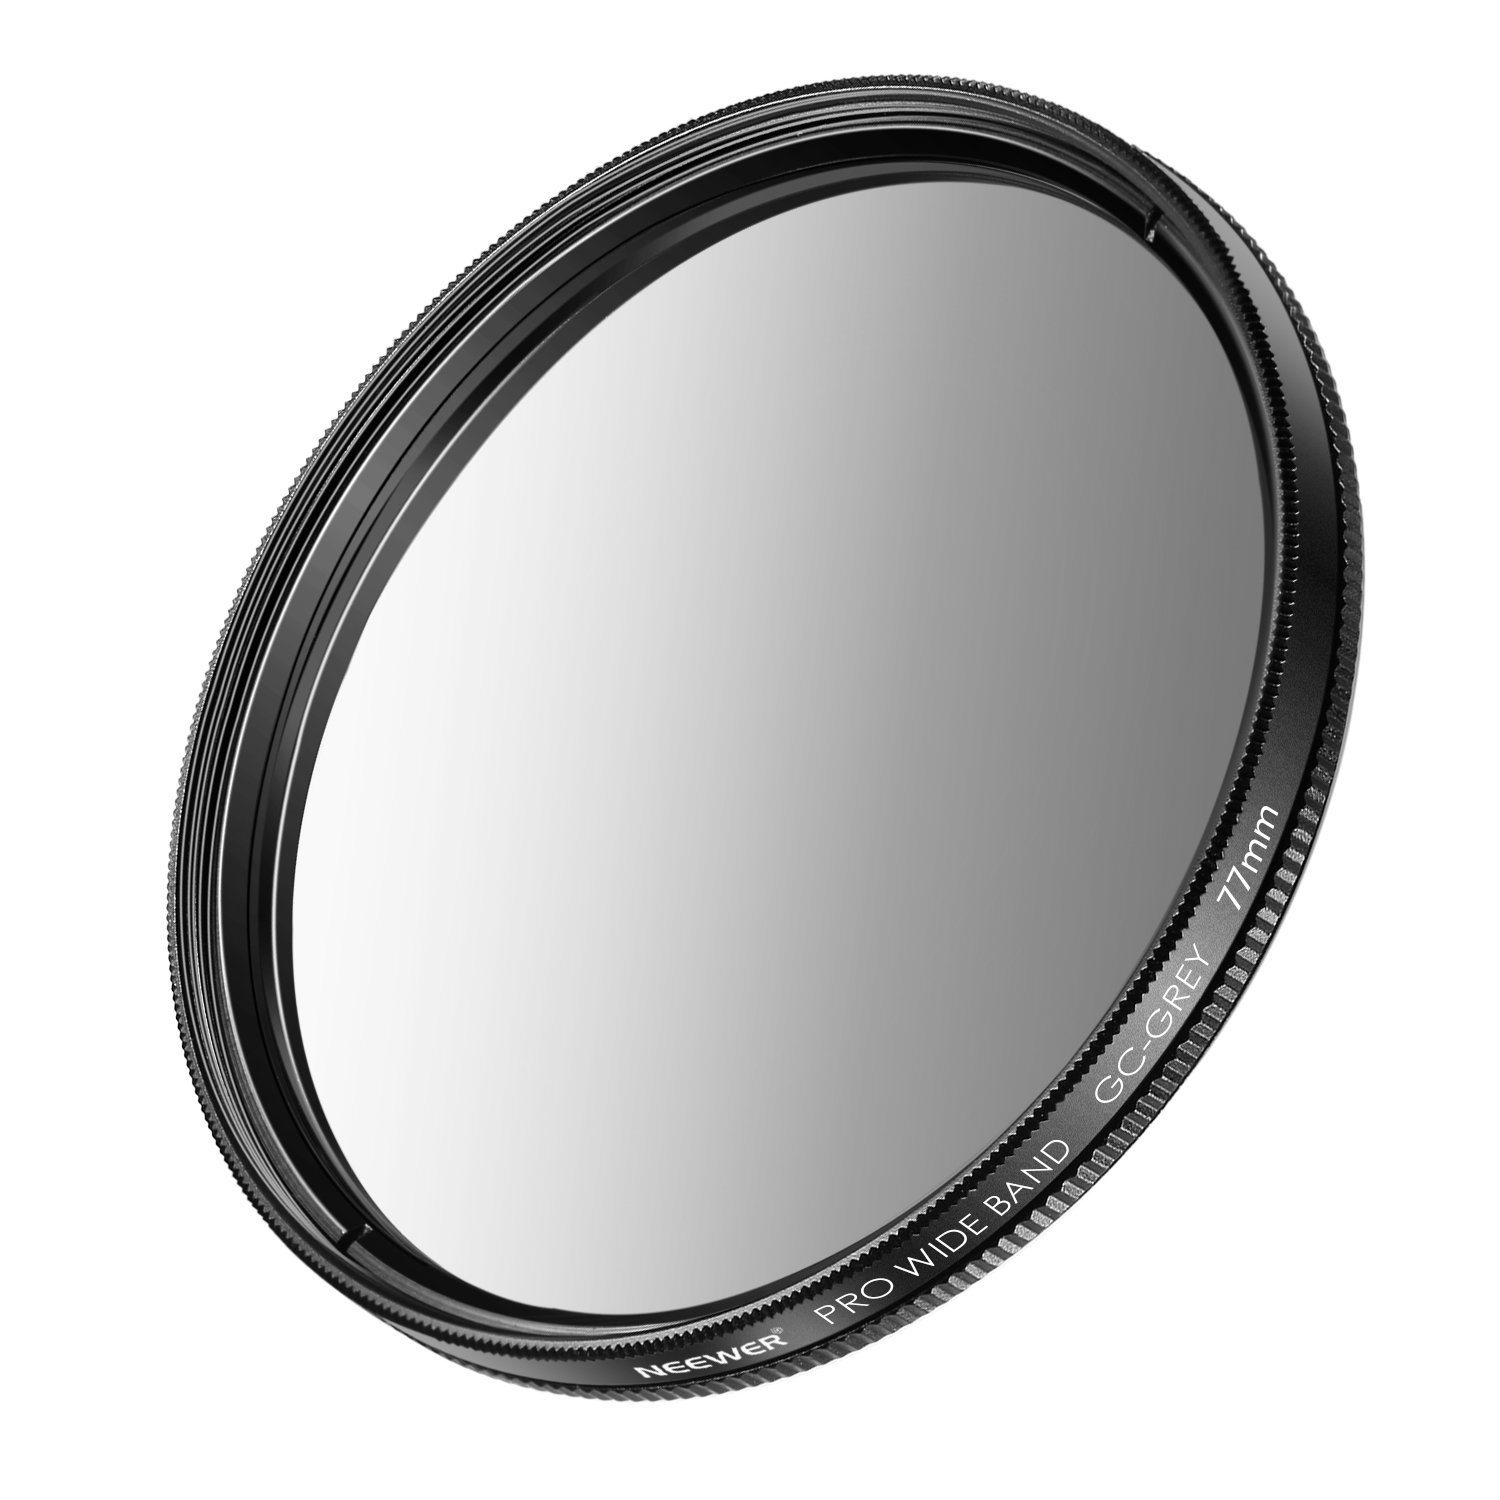 Neewer 77mm Graduated Neutral Density Filter (Grey) for Canon Rebel T5i T4i T3i T3 T2i T1i XT XTi XSi SL1 Nikon D33 D32 D31 D3 D52 D51 D5 Pentax Sony Sigma DSLRs and Other Cameras with 77mm Lens 10091592